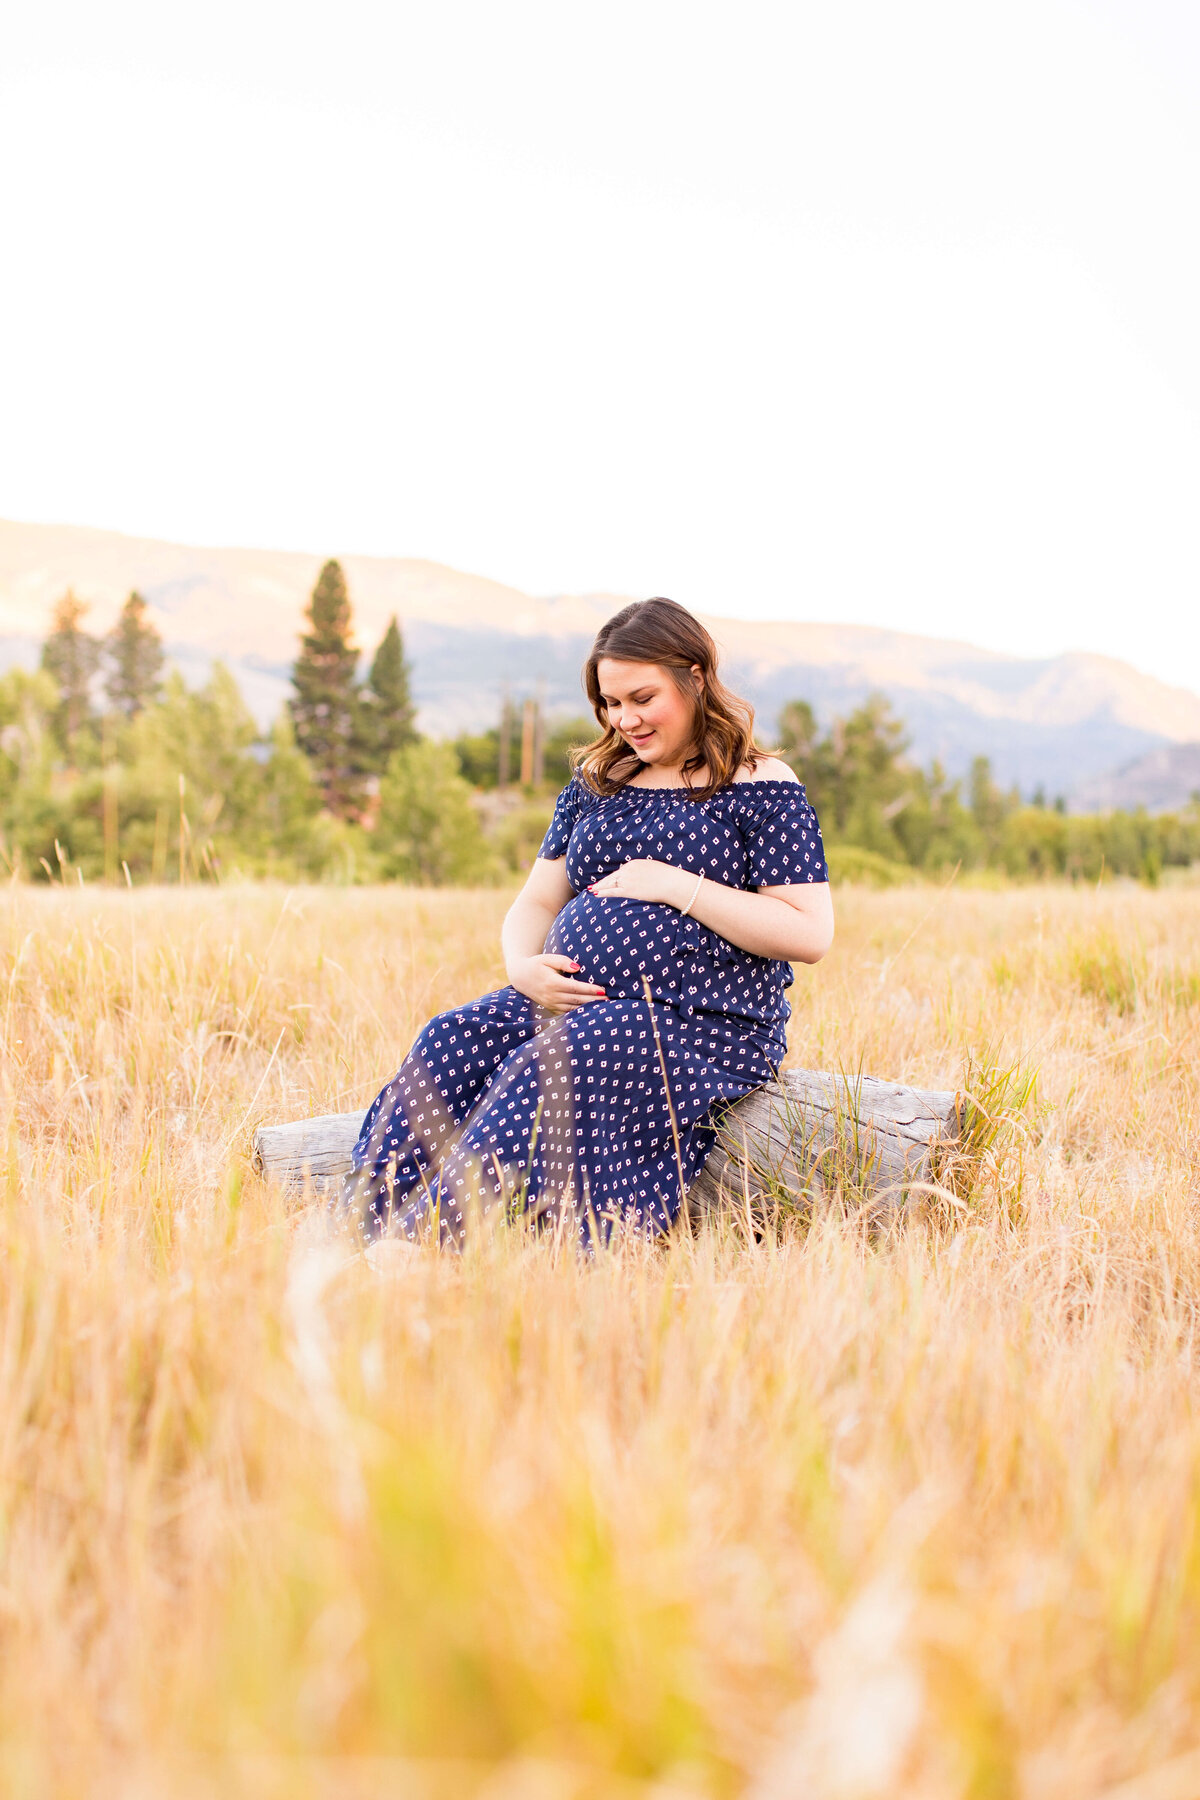 Ashley&JoelMaternitySession2020-57